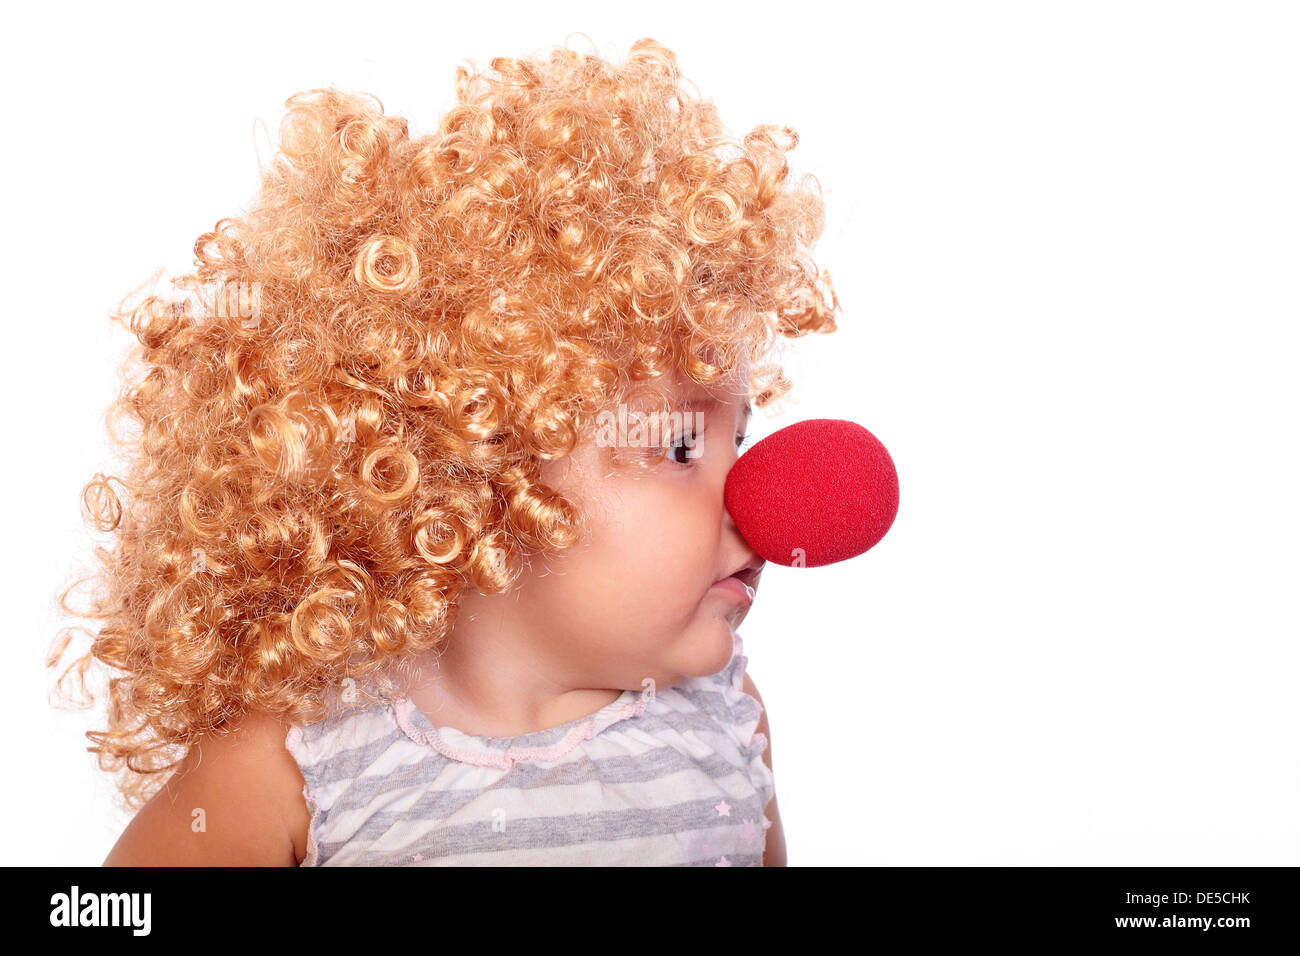 little clown baby with a red nose - Stock Image